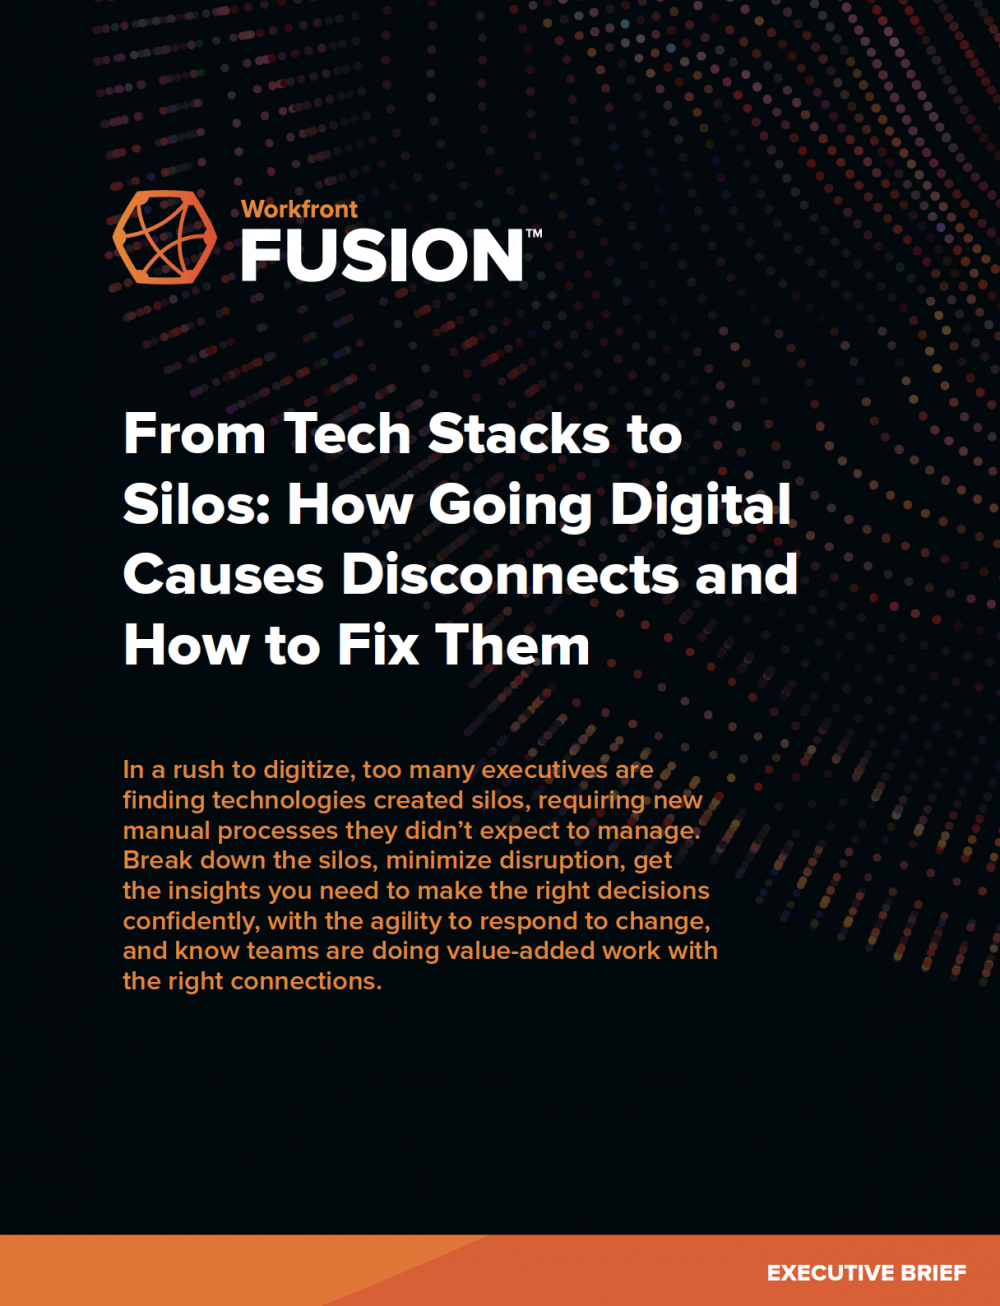 From Tech Stacks to Silos